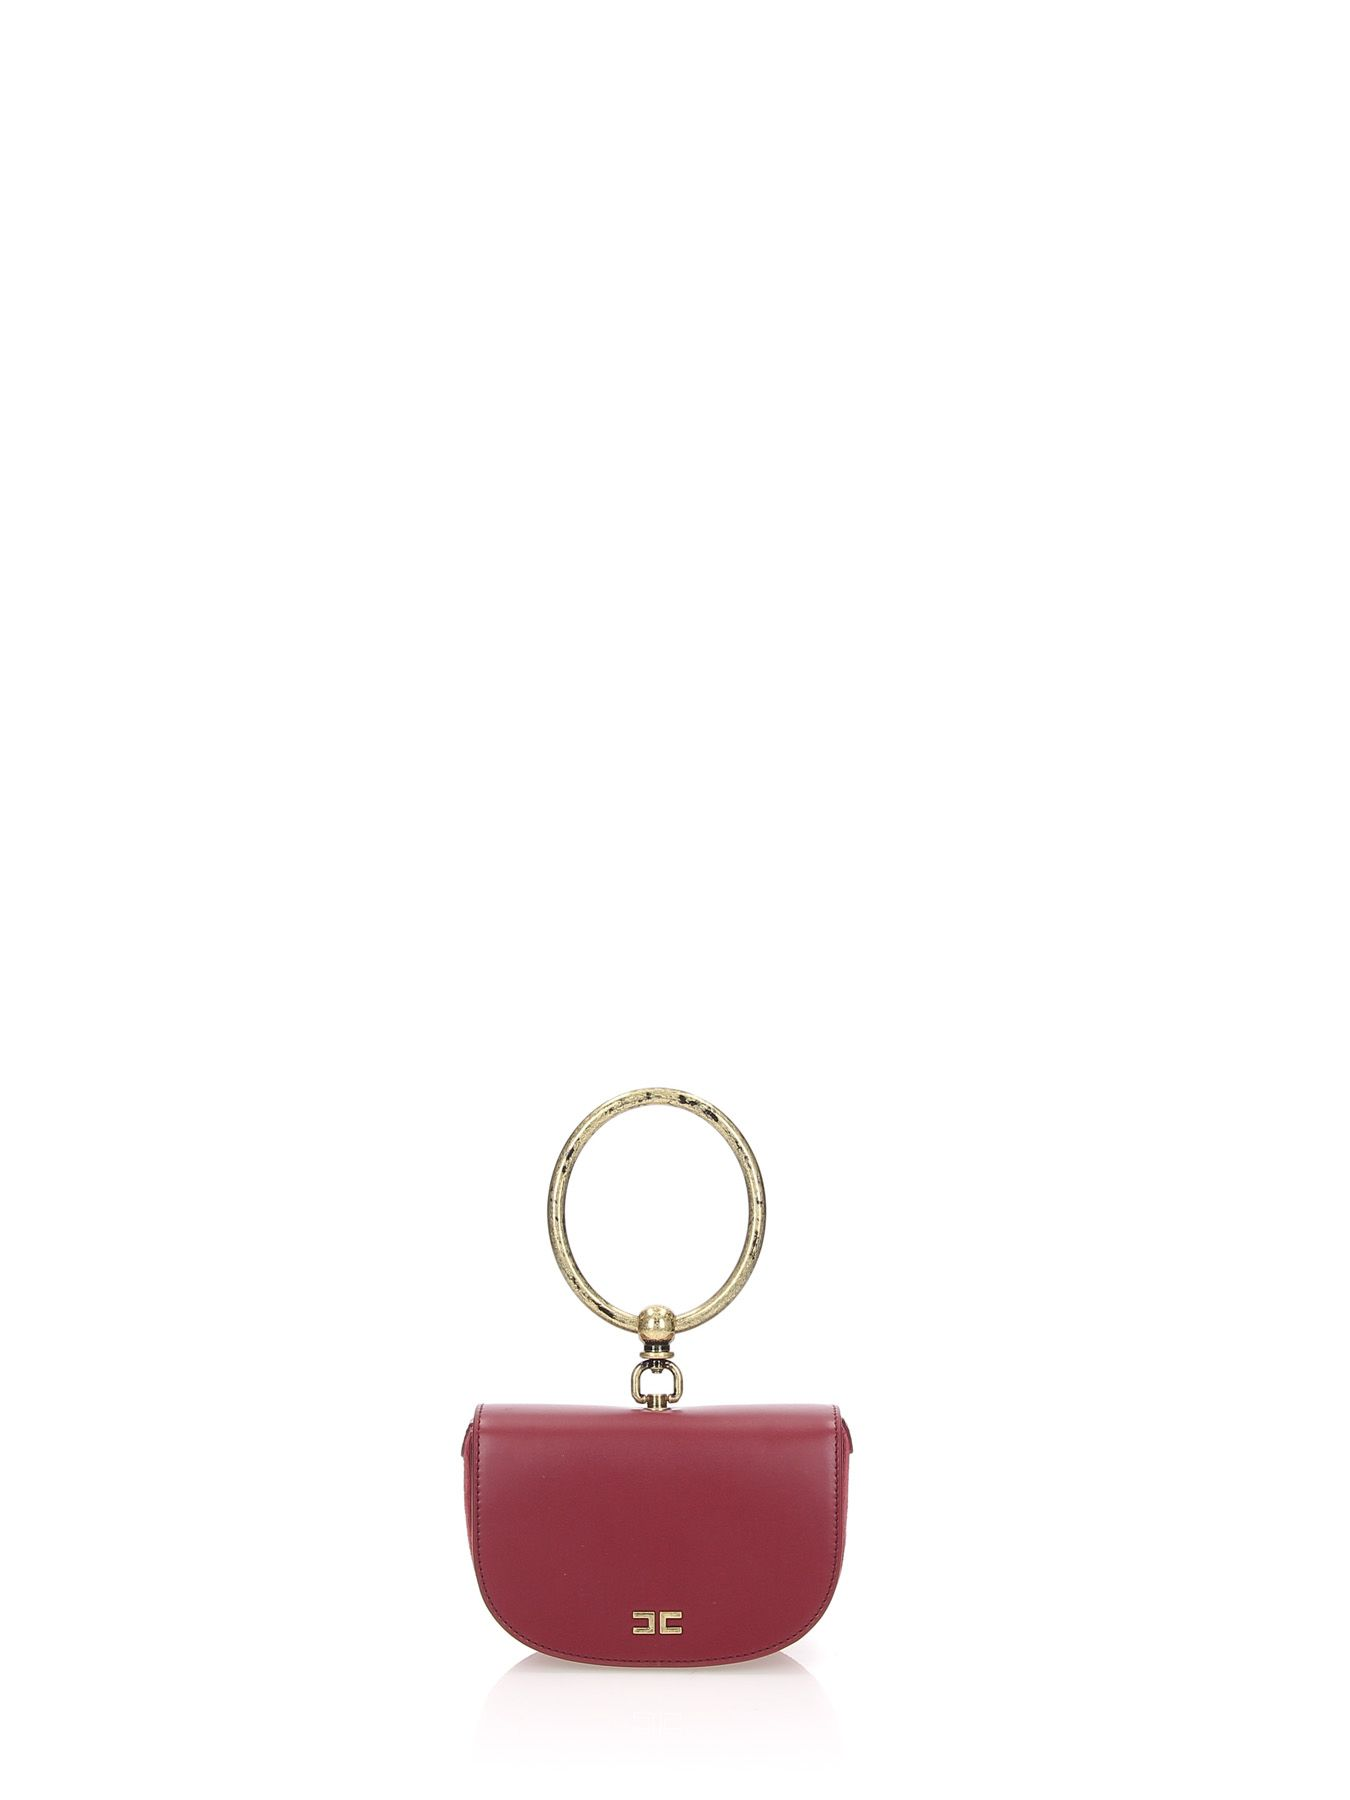 Ring Handle Bag in Red